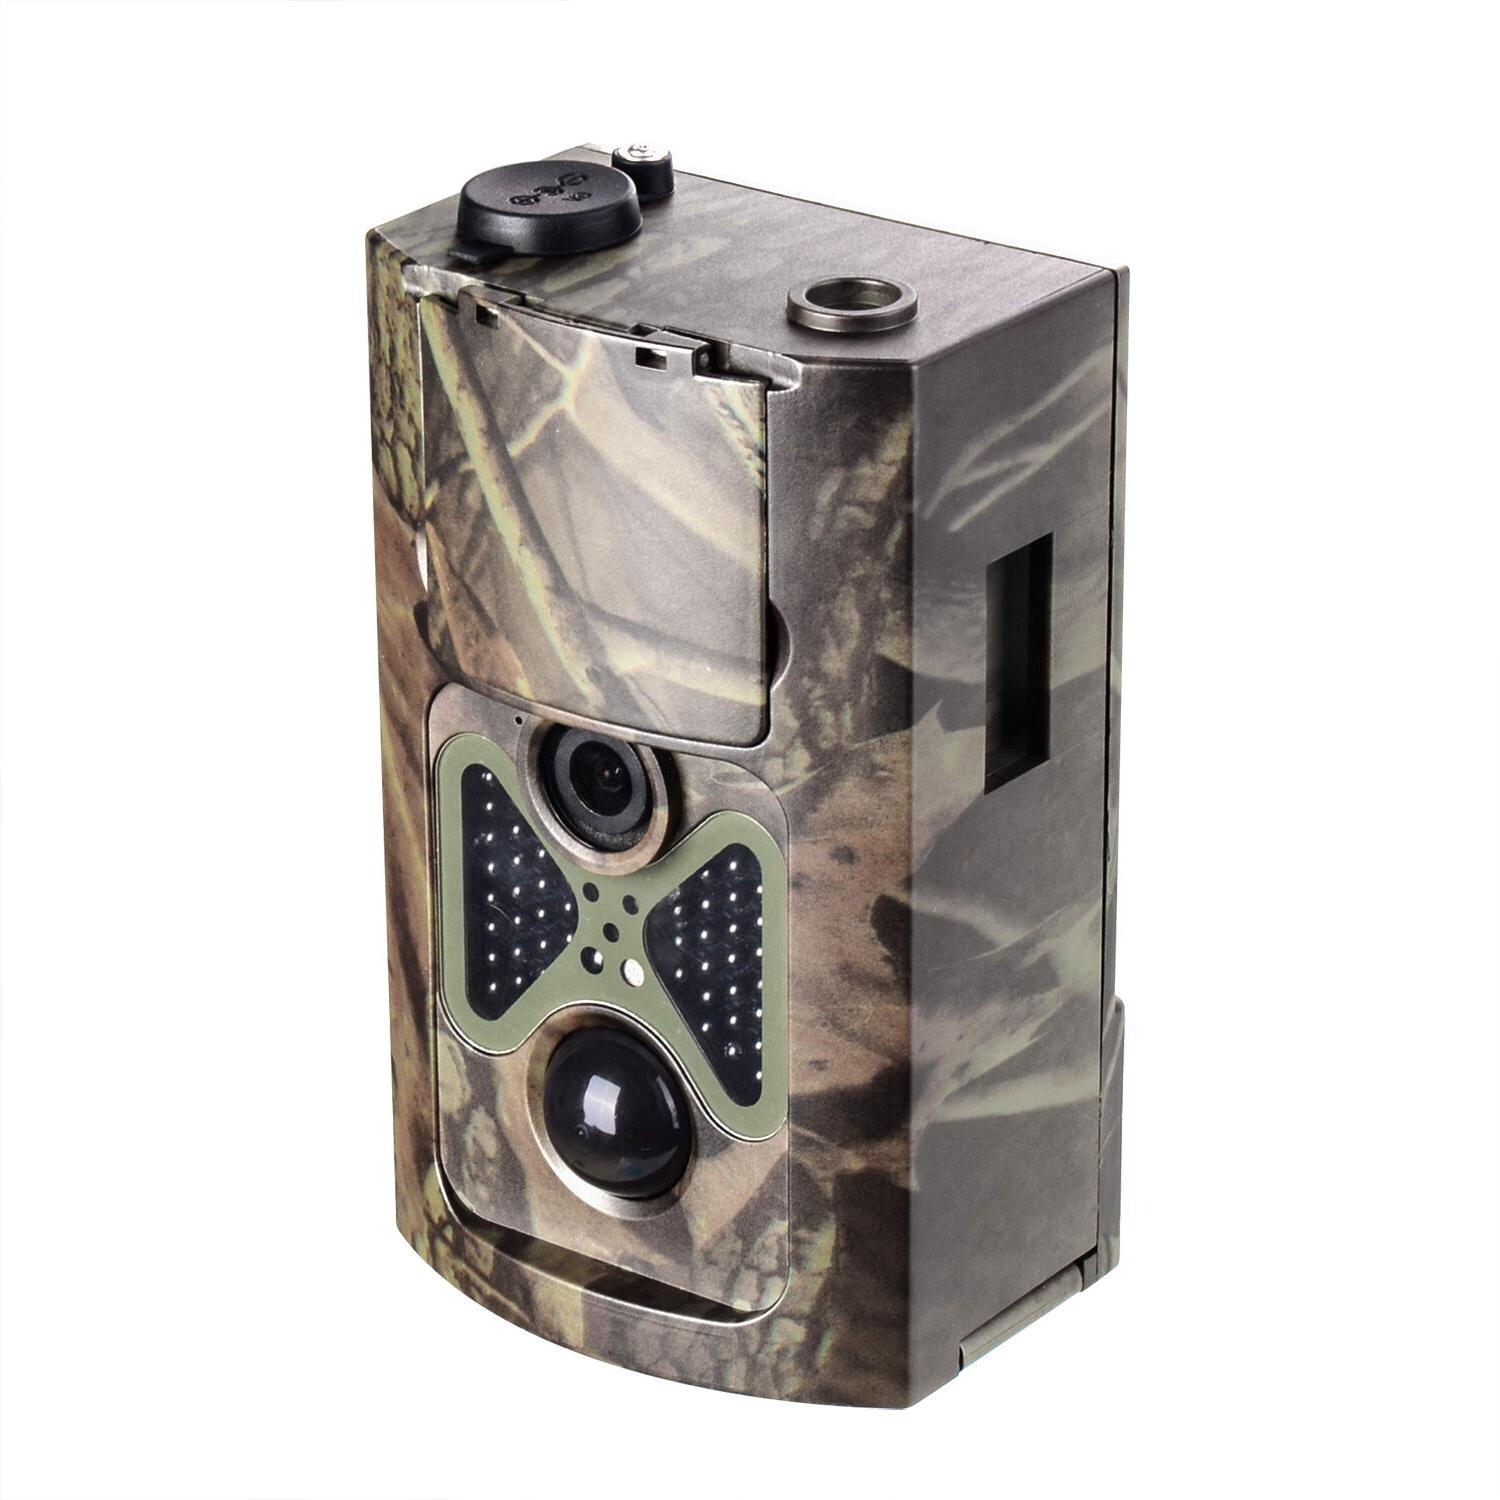 ANNKE 12MP Hunting Camera Video Scouting Wild